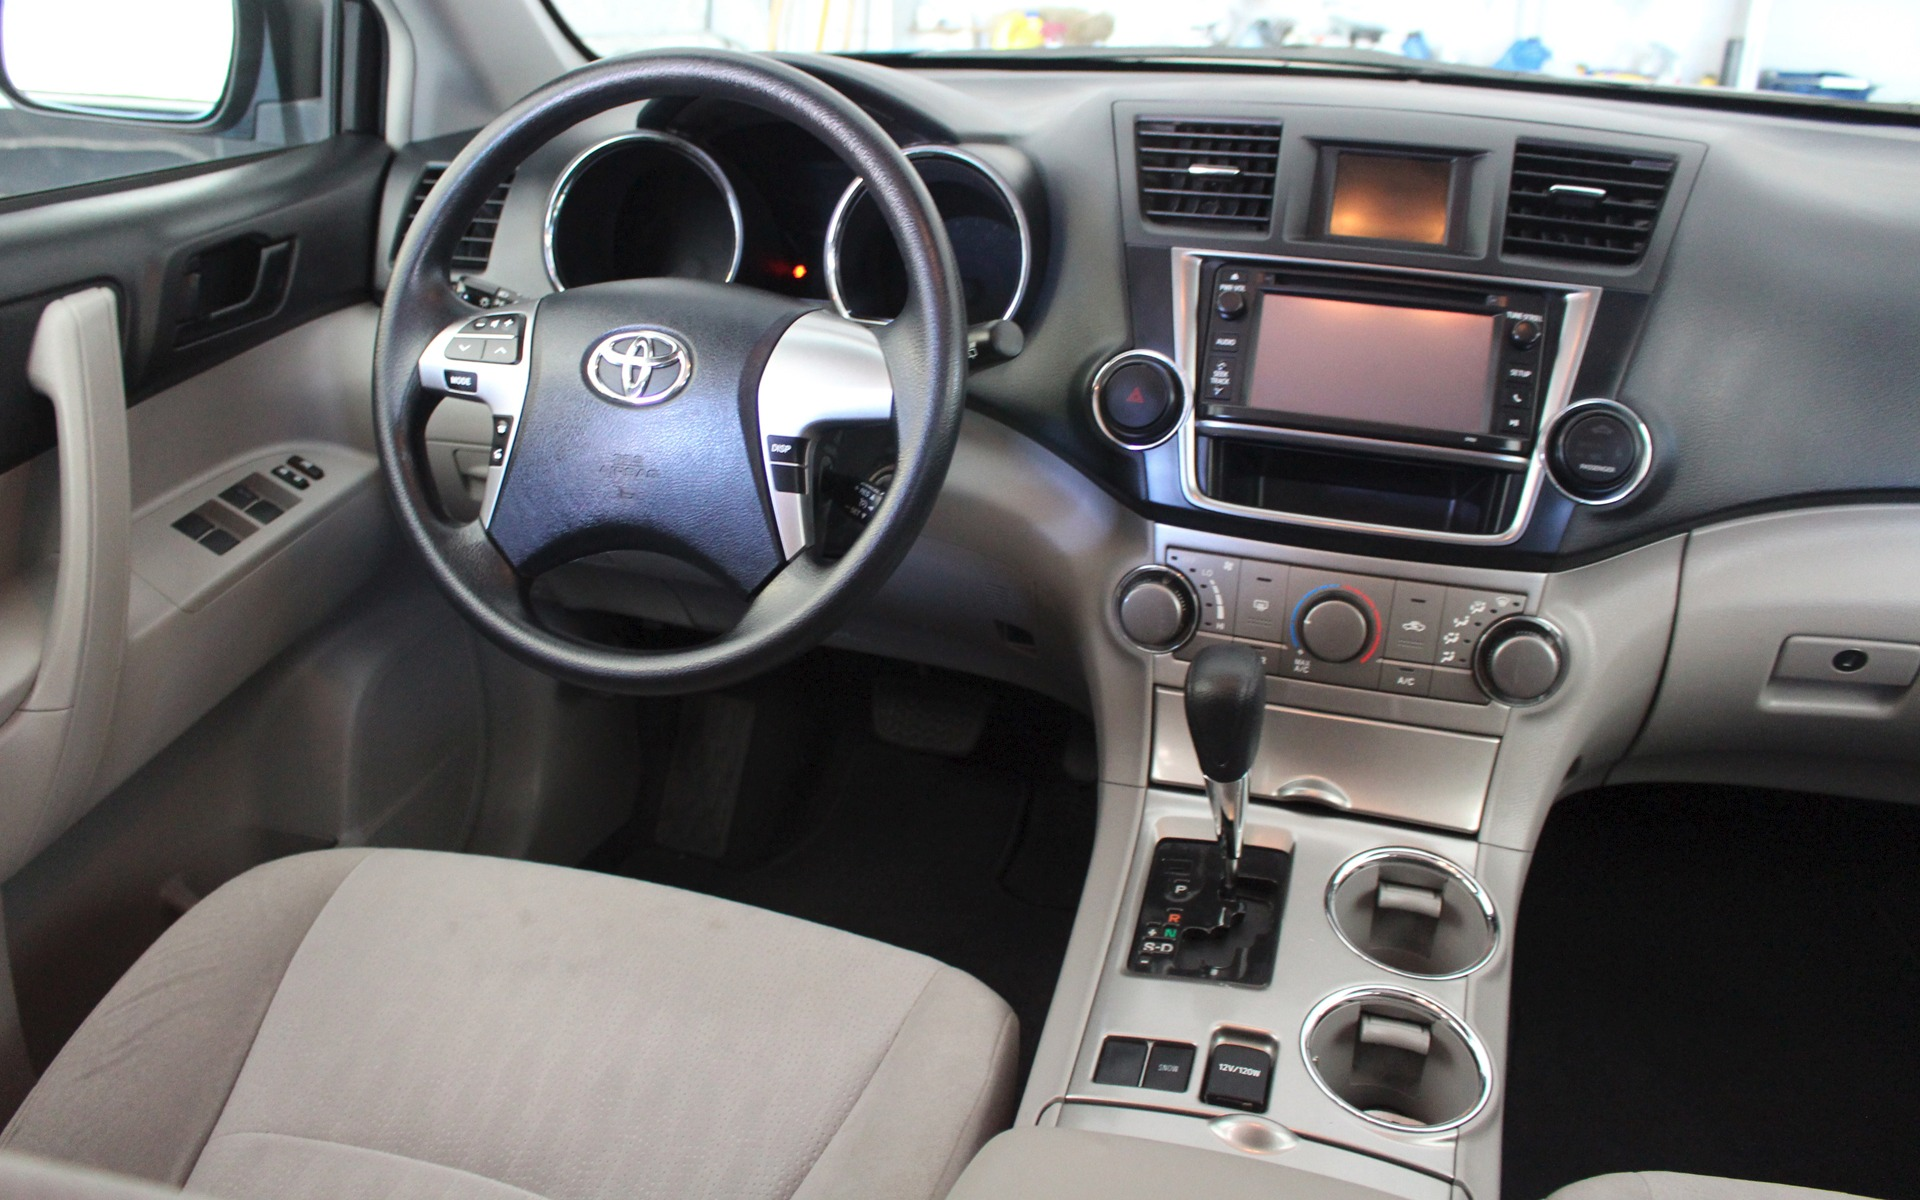 2013 Toyota Highlander Stock TO22 for sale near Palm Springs CA